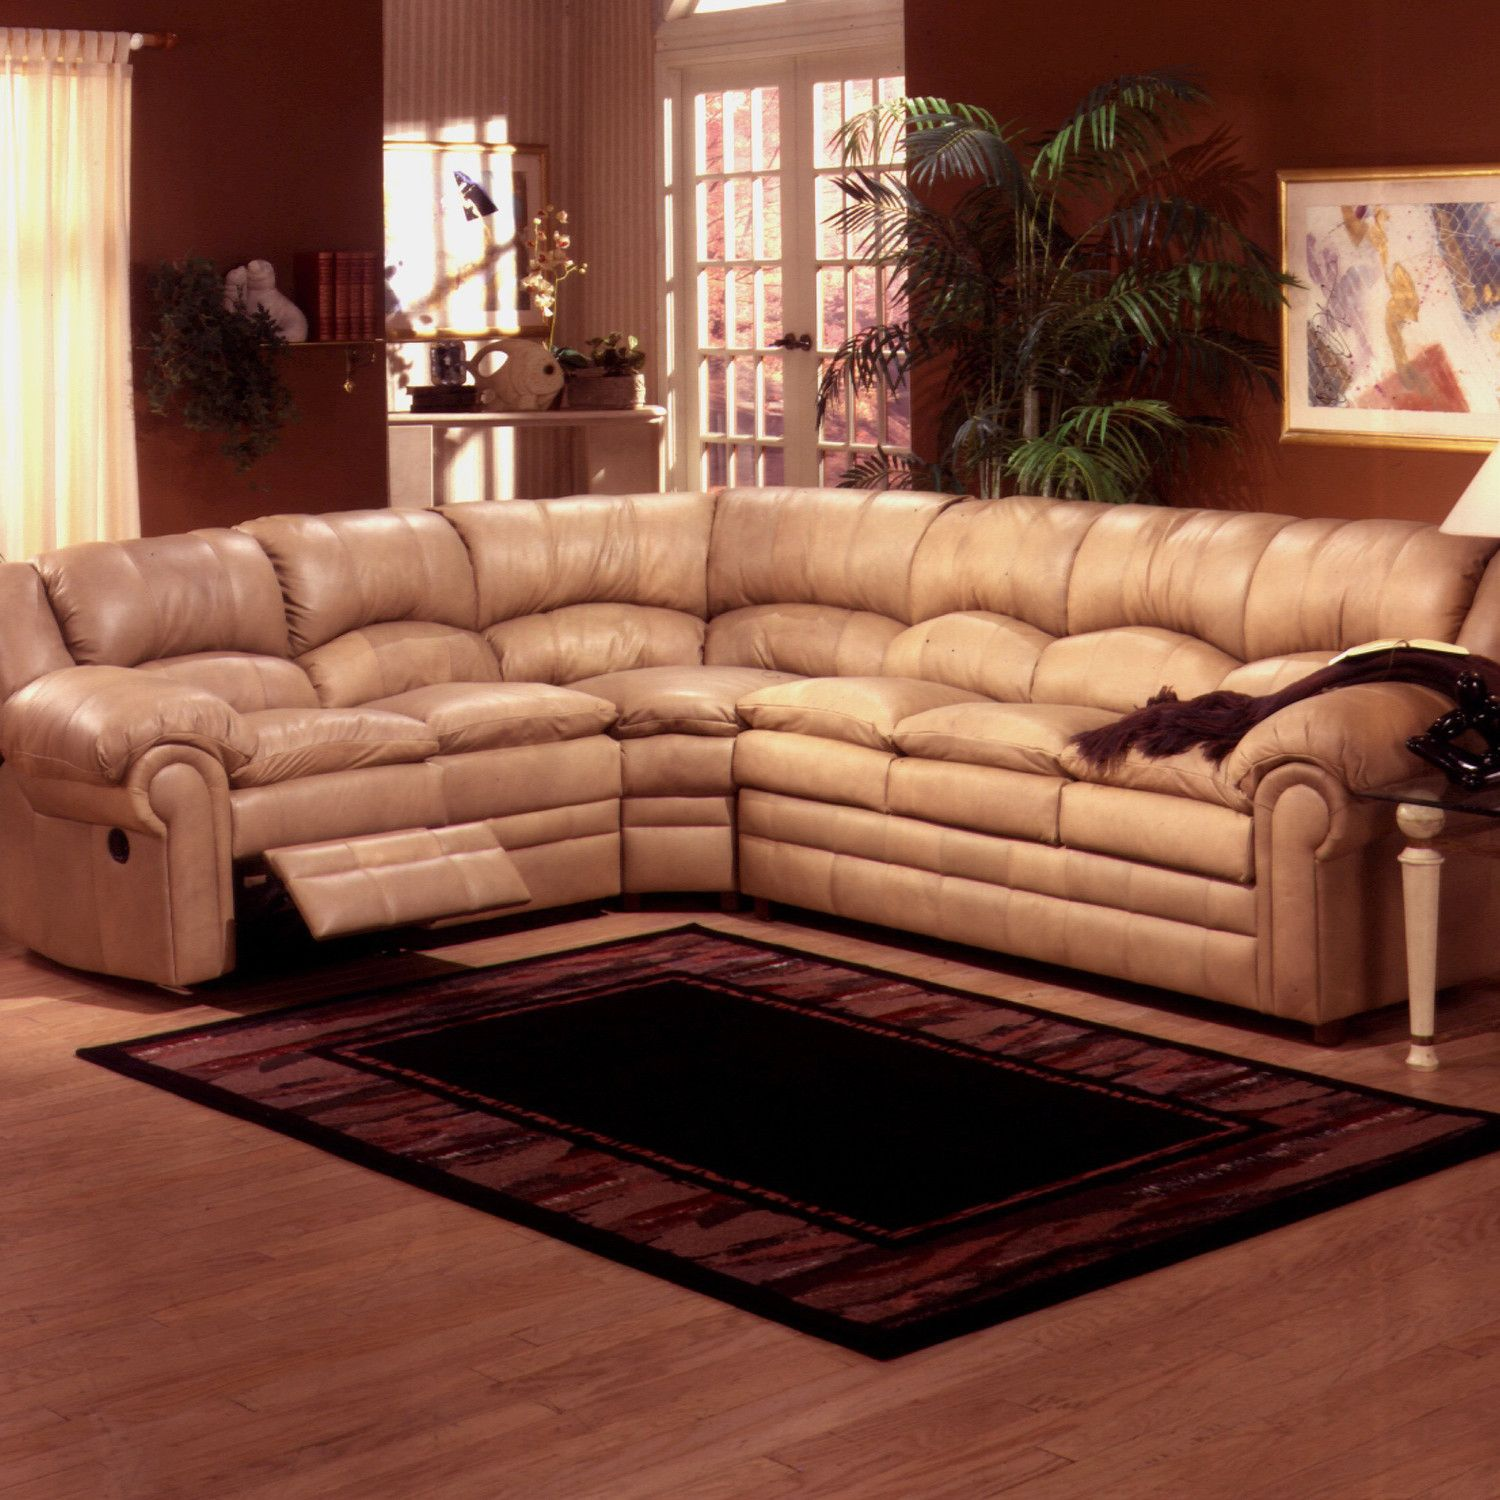 Omnia Furniture Riviera Leather Reclining Sectional In Black With Air Dream Mattress